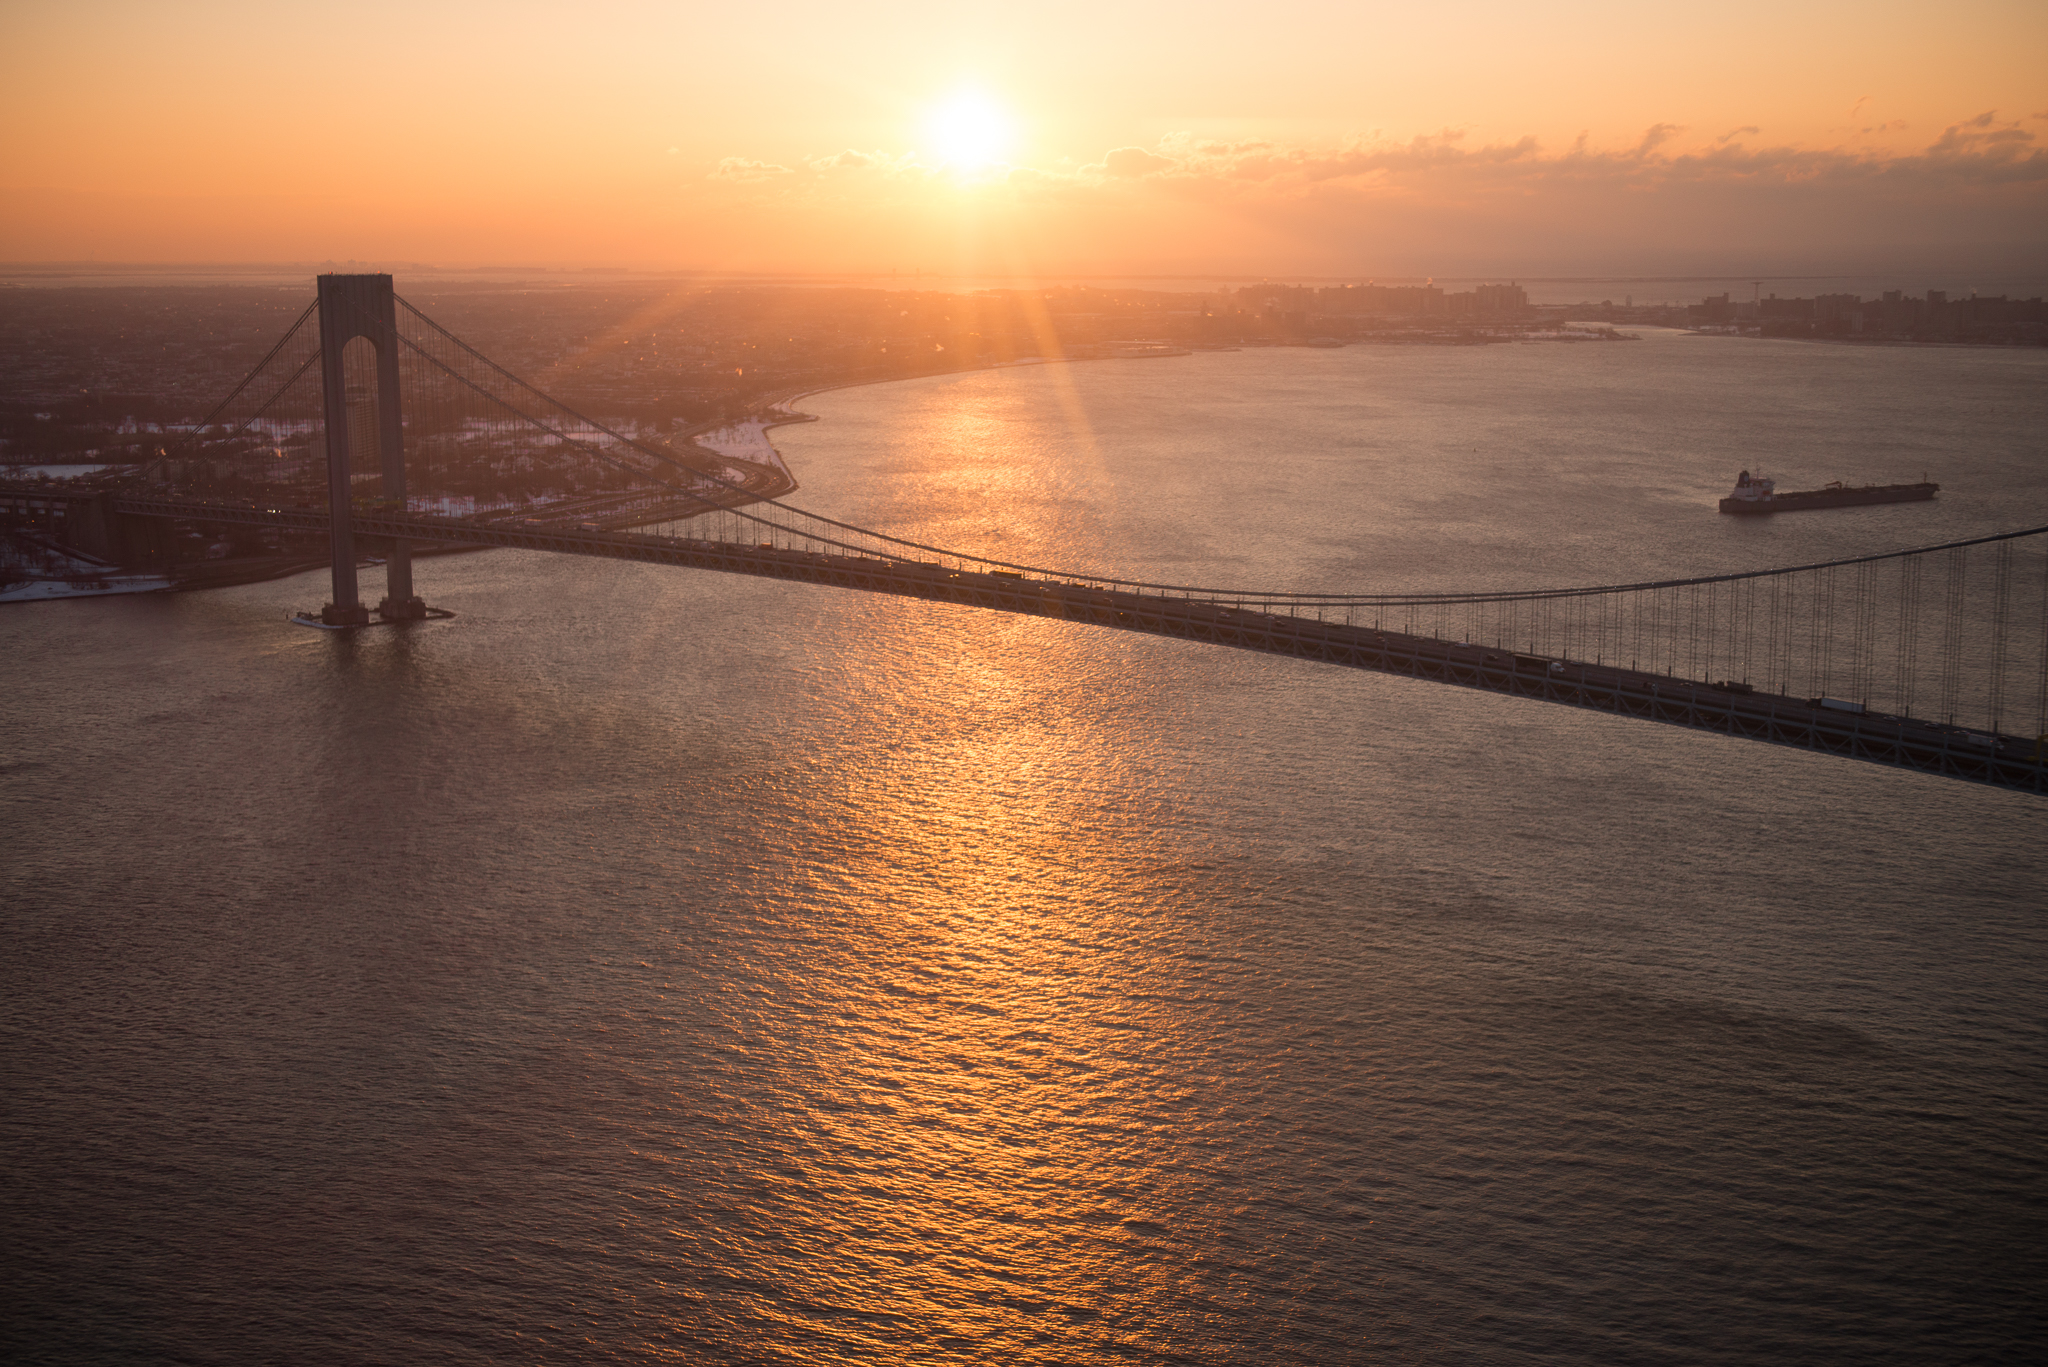 a sunrise flight to shoot down in NJ.  happened to get a nice shot of the bridge on the way down.